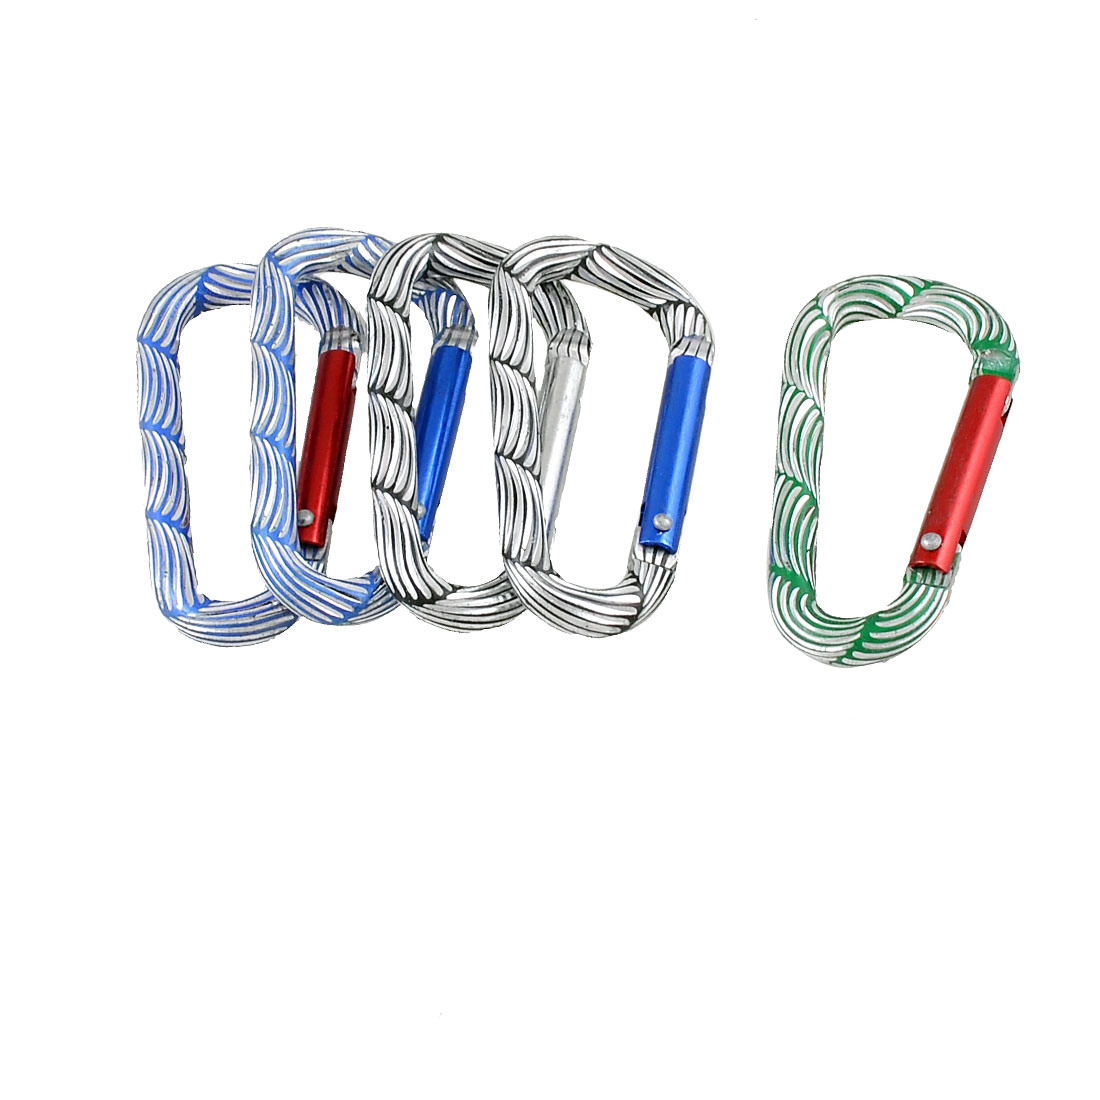 Multicolor Stripded D Shaped Aluminum Alloy Locking Carabiner 5 Pcs